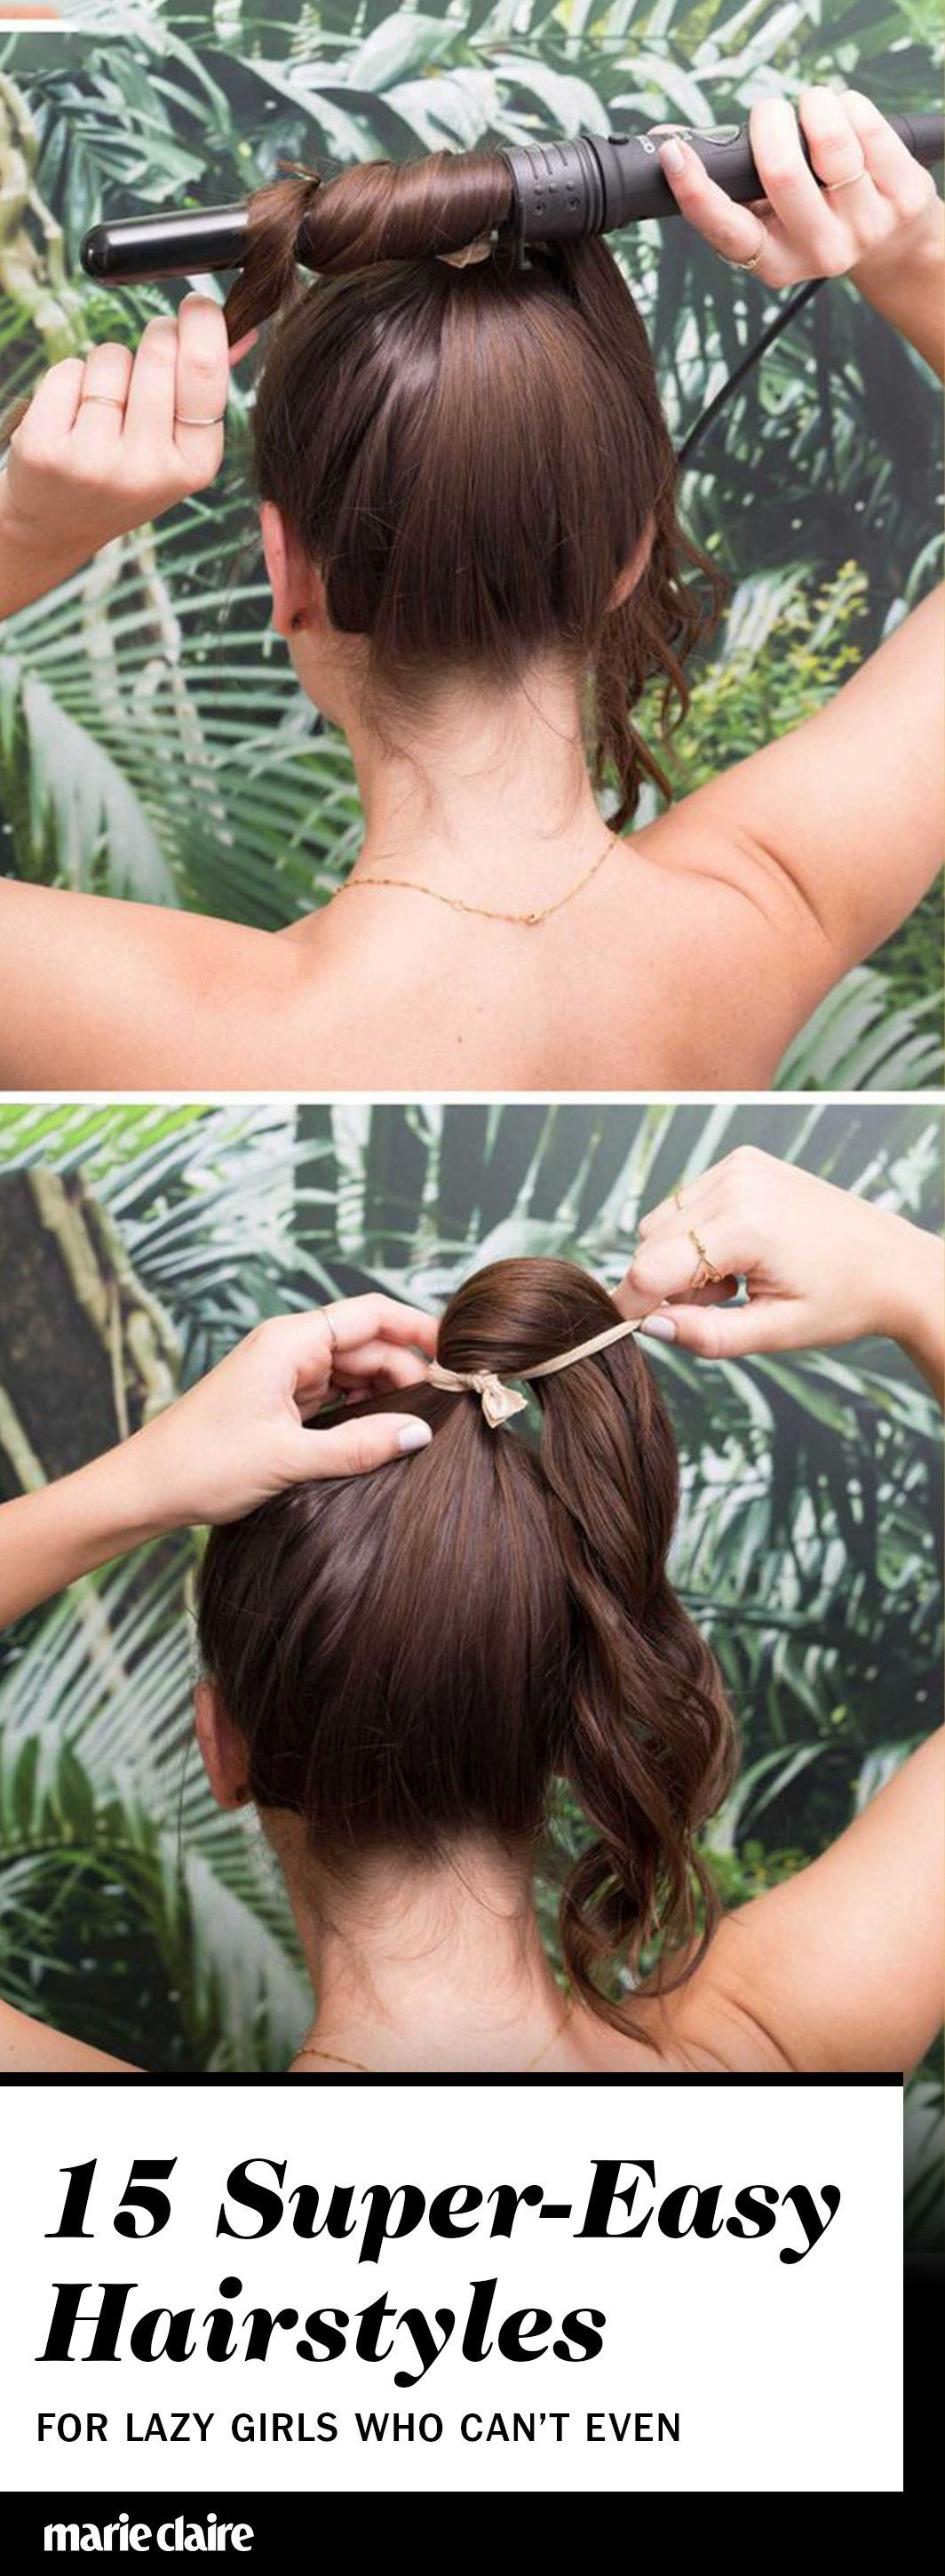 supereasy hairstyles for lazy girls who canut even hair